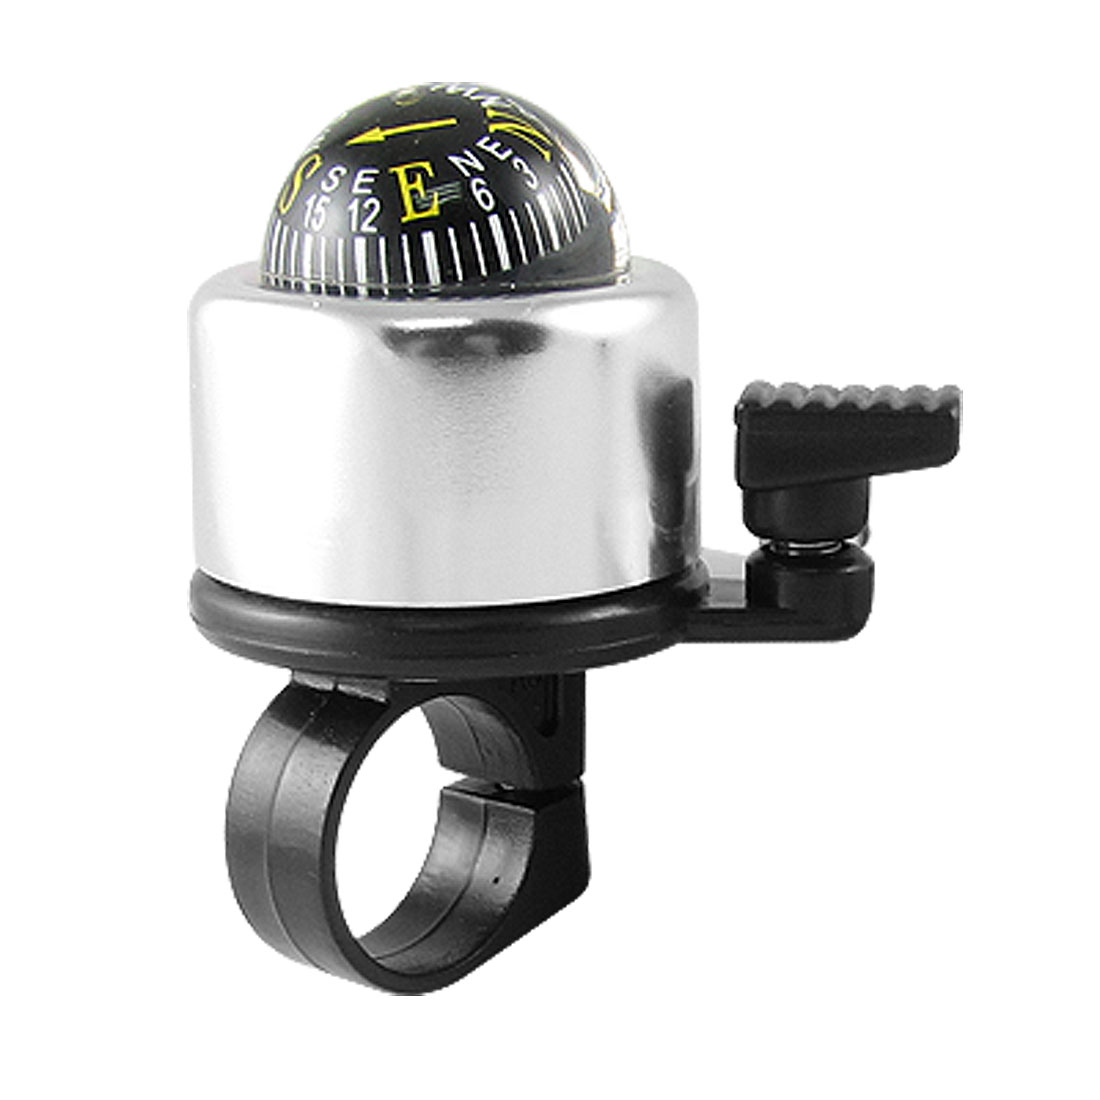 Front-Mounted Compass Bell Silvery Black for Bike Bicycles